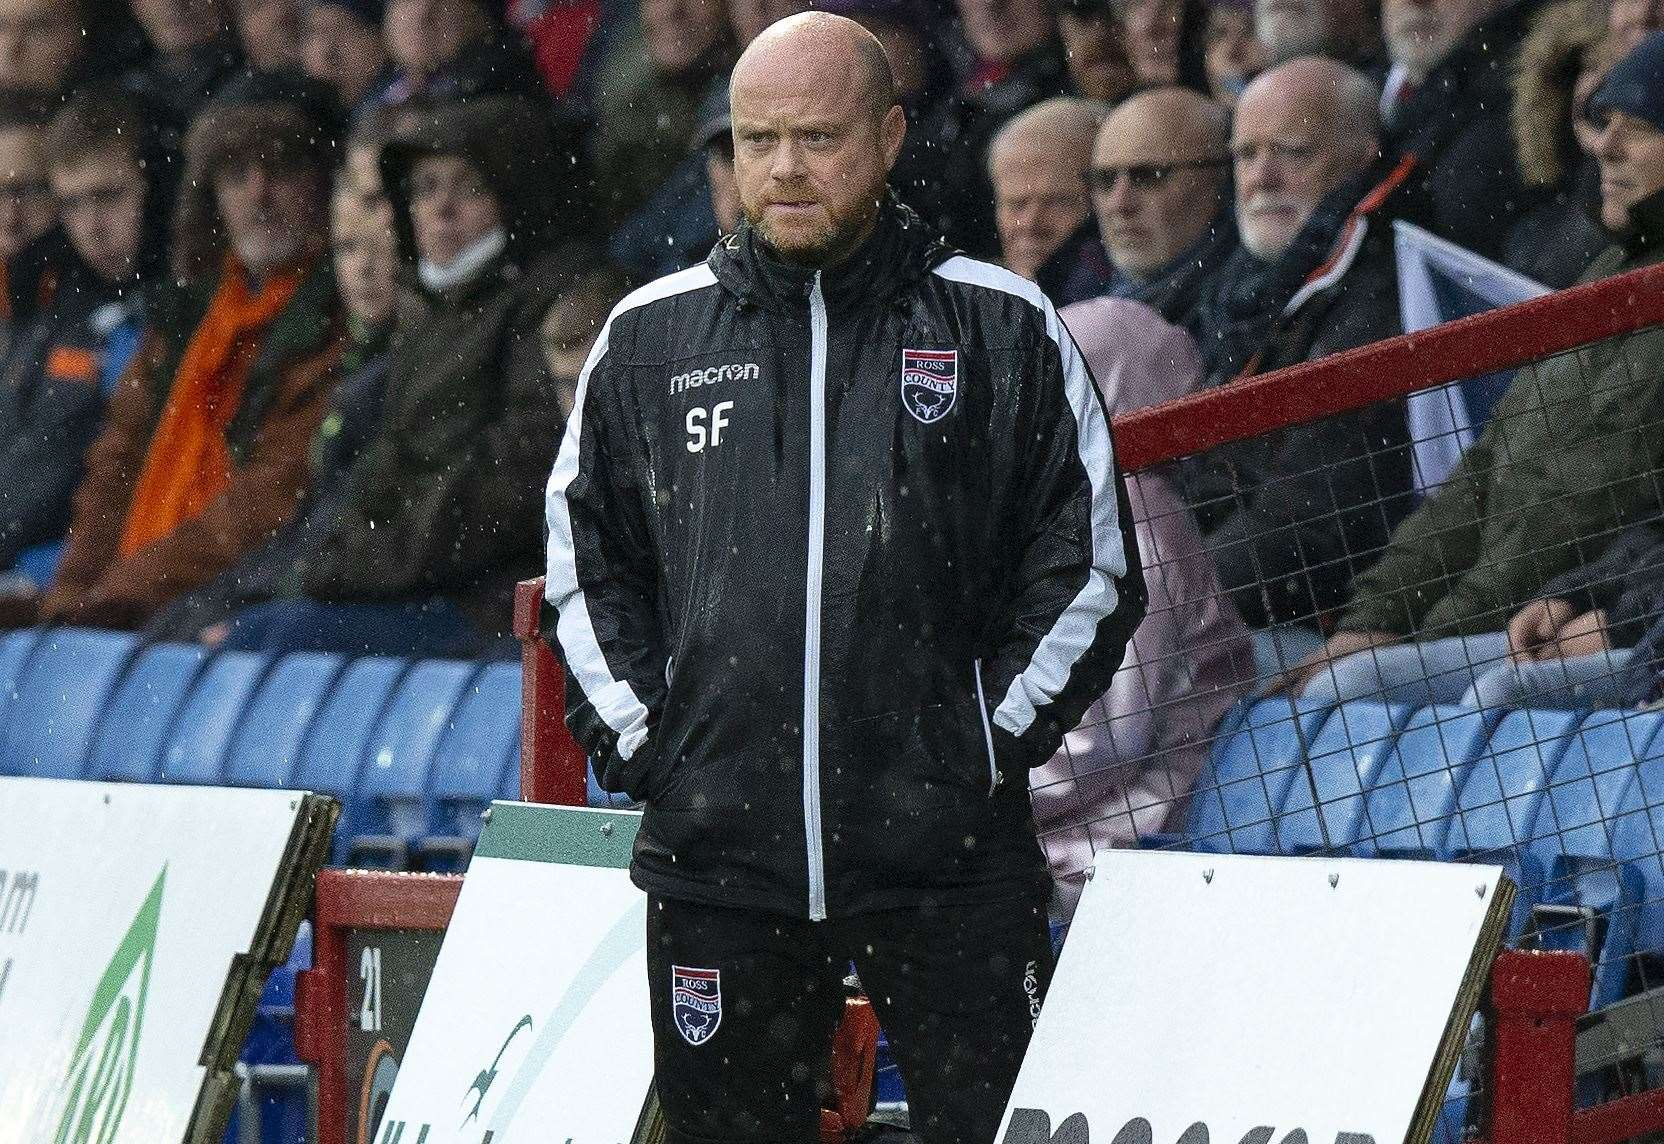 Ross County hope to sign up new goalkeeper